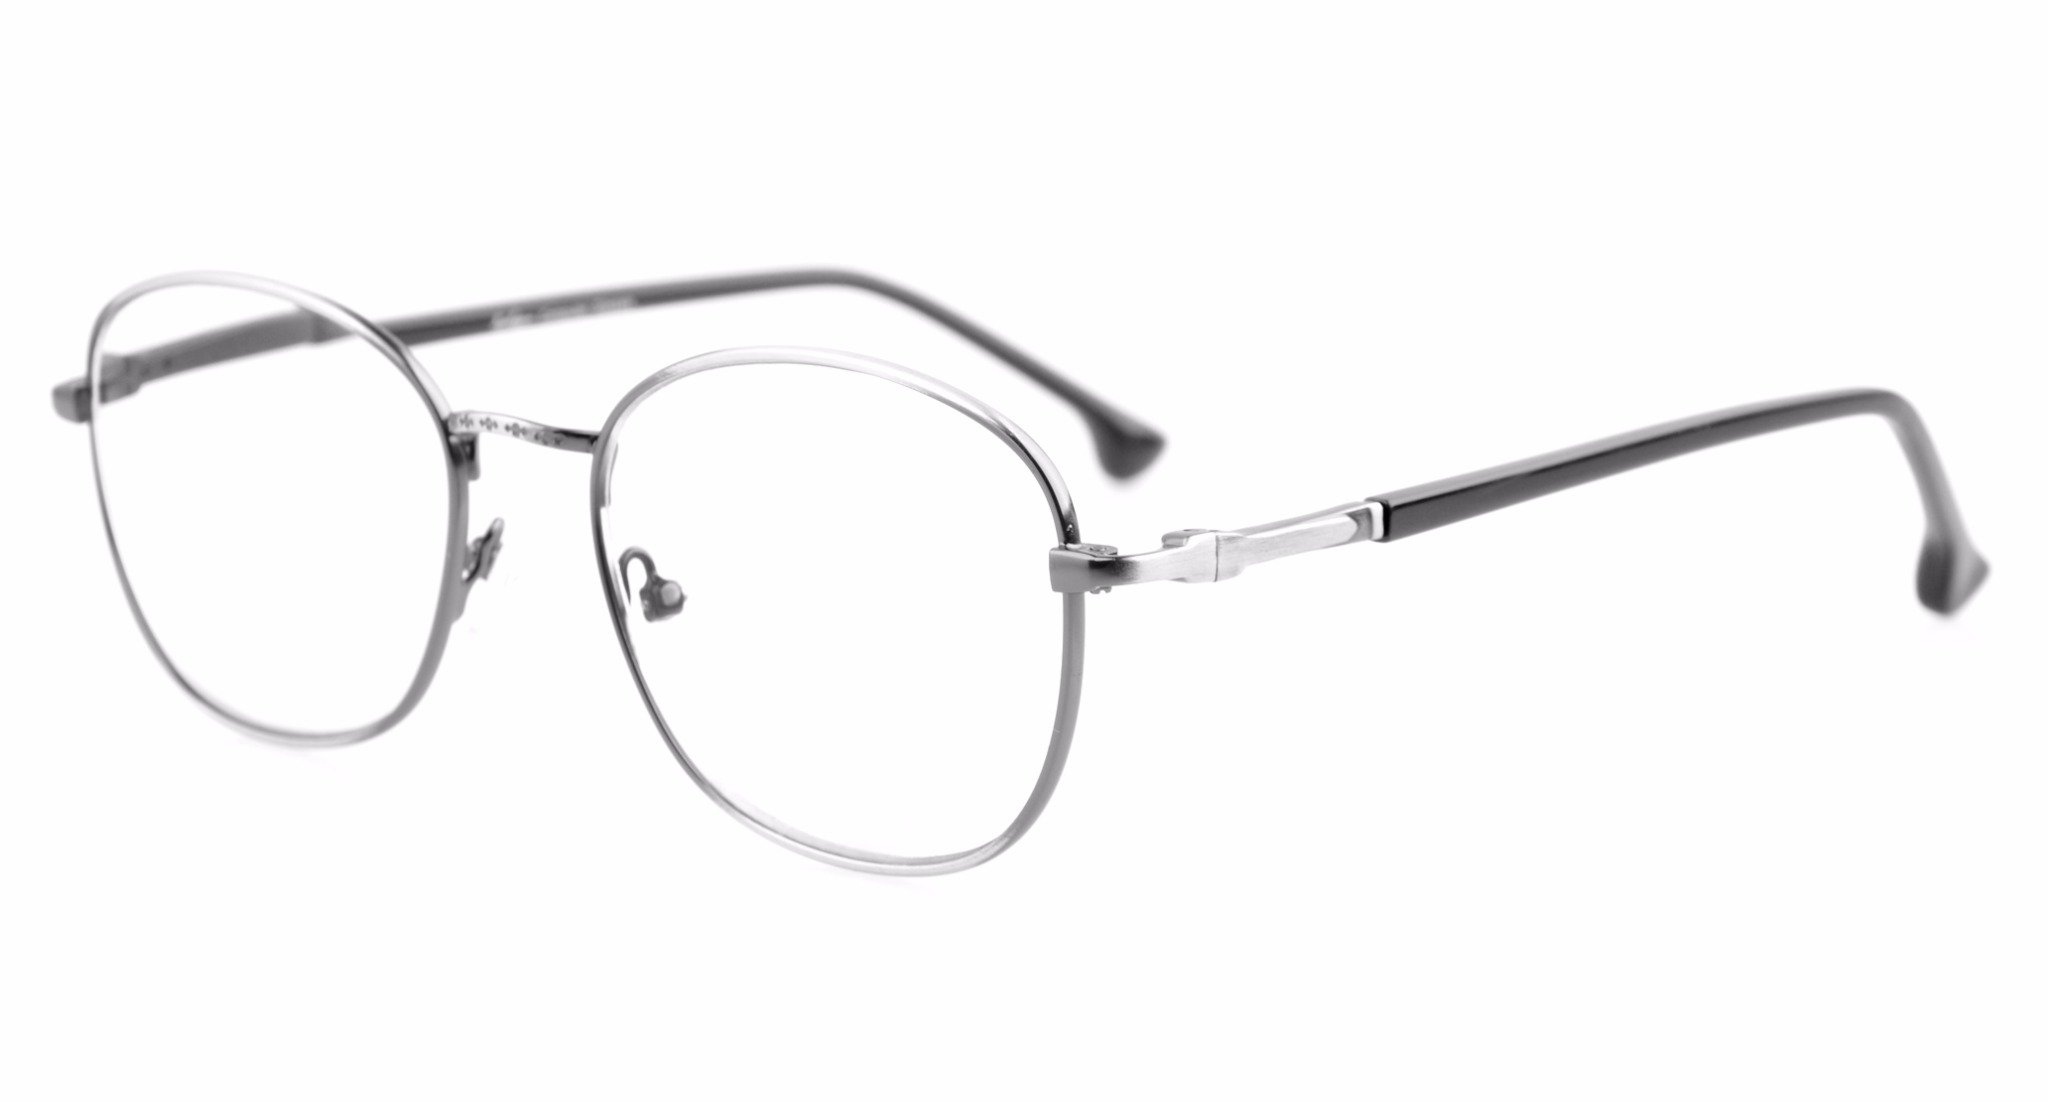 Eyekepper Retro Spring Hinges Glasses Eyeglasses Frame R1621-Anti Silver-0.0